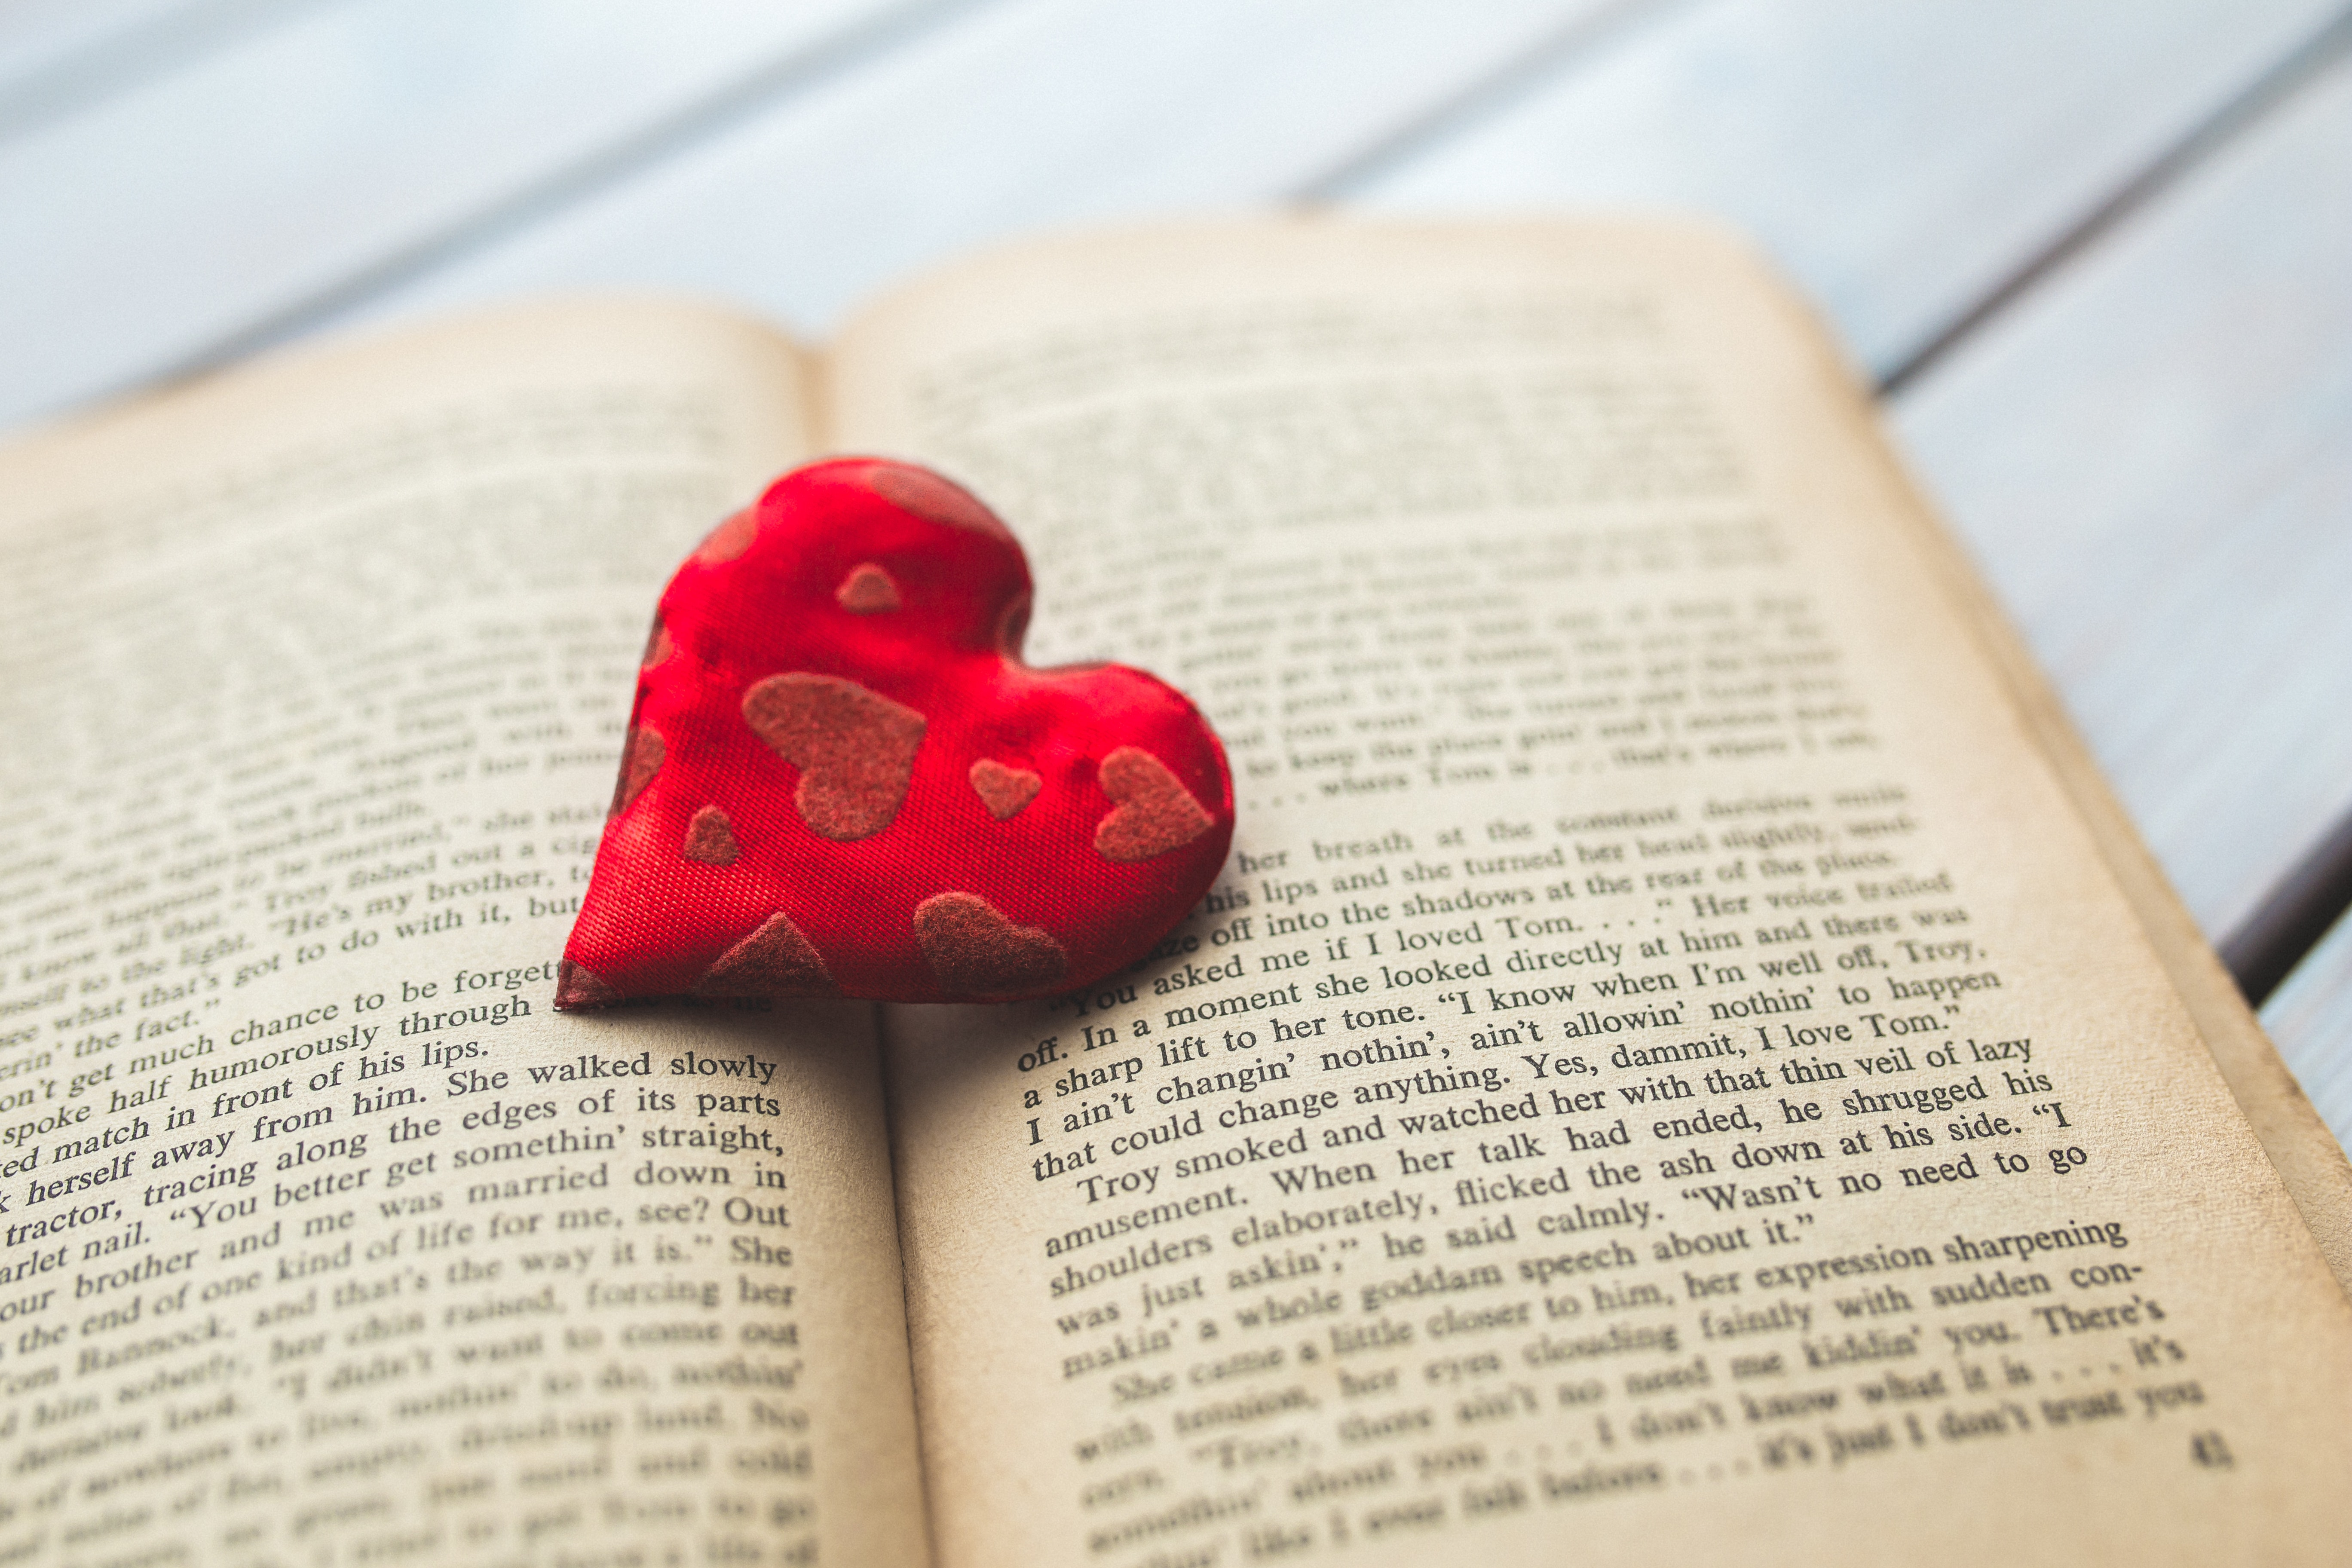 A small red heart lies on the pages of an open book.